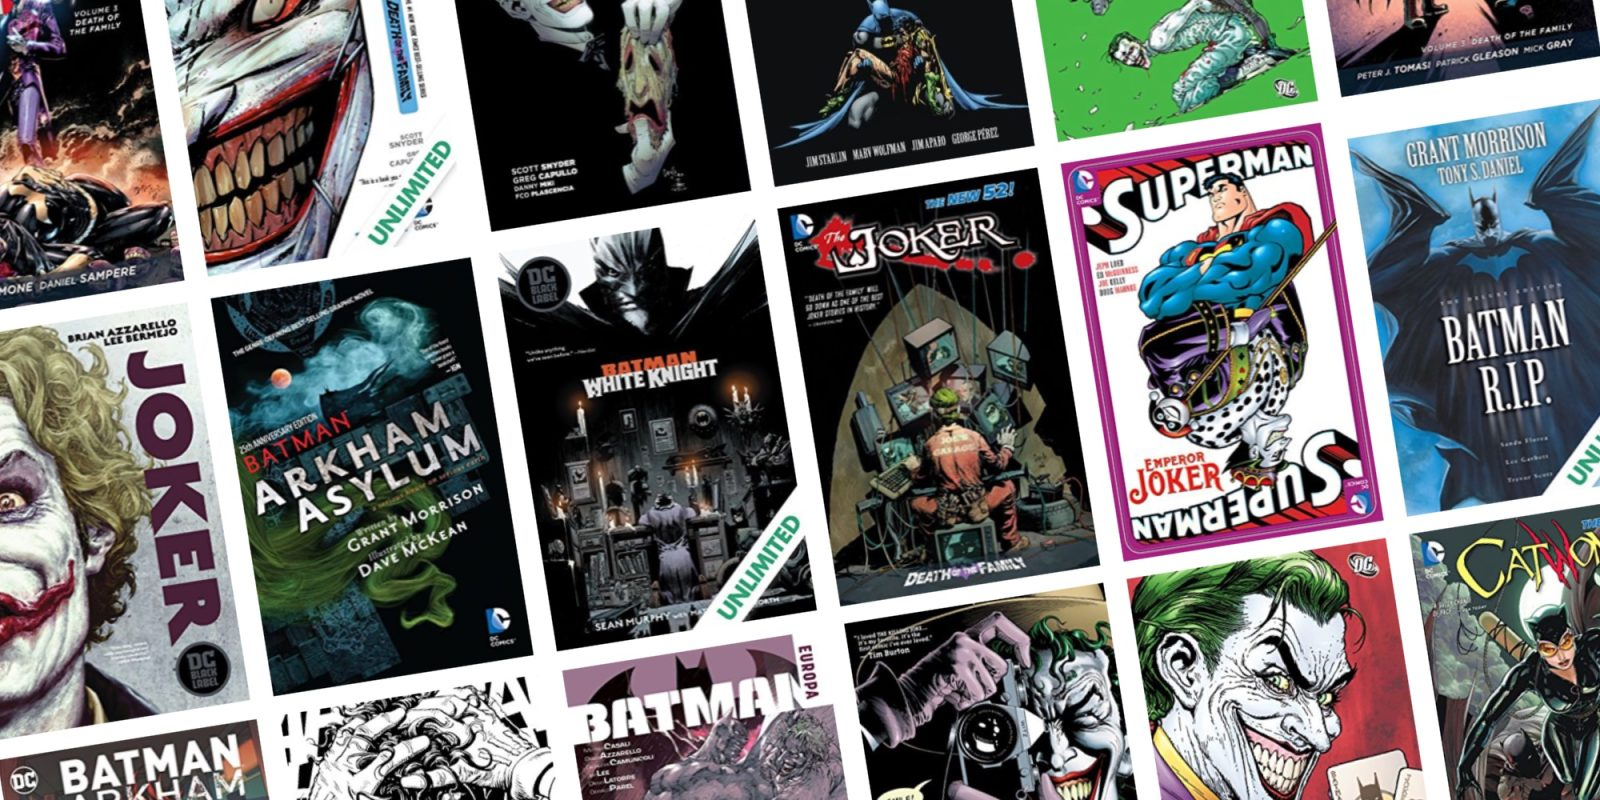 ComiXology preps for NYCC with up to 83% off Joker, X-Men, and more from $1